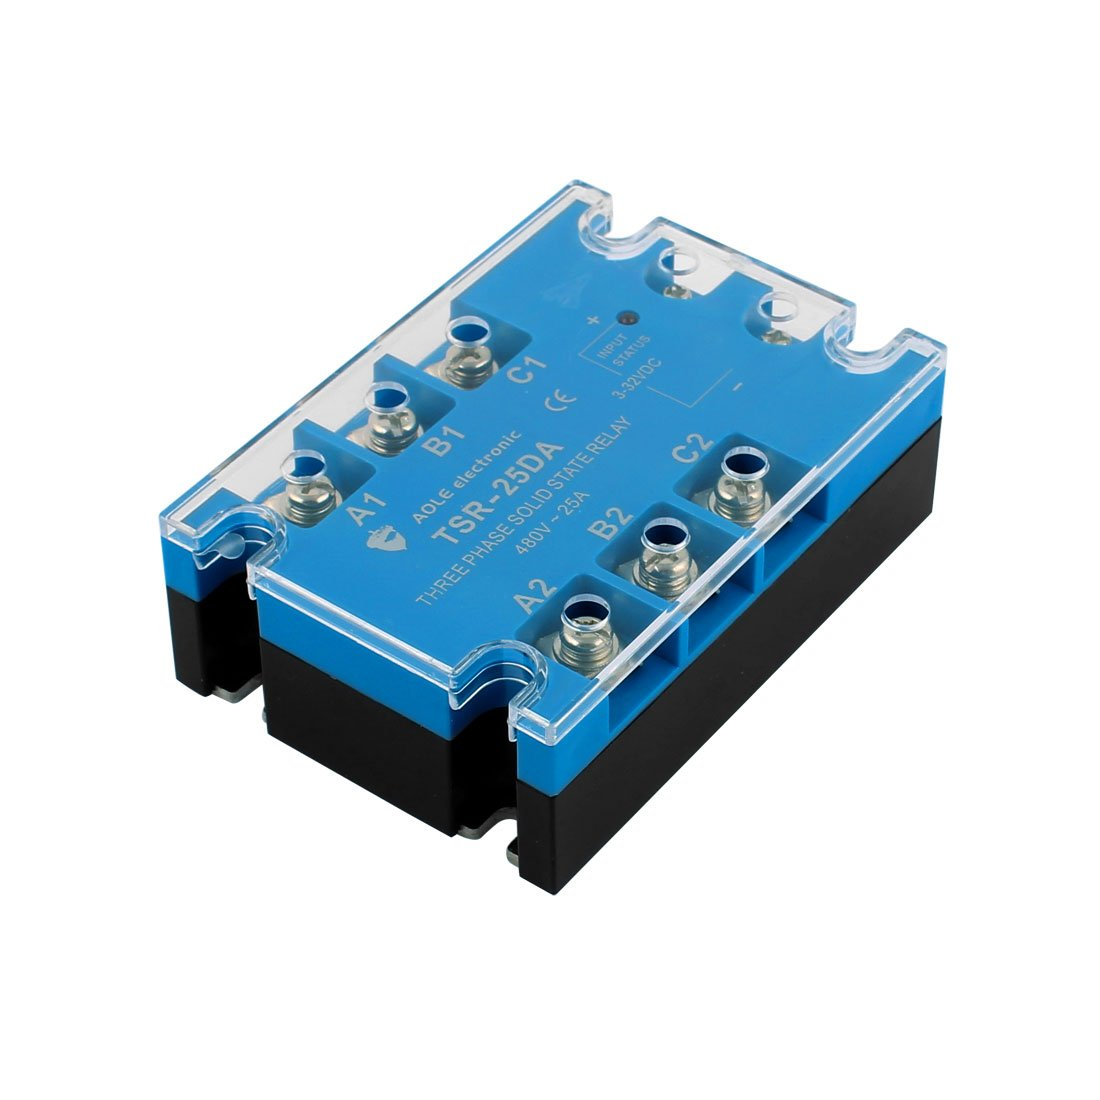 Tsr 25da 3 32vdc To 480vac 25a Three Phase Solid State Relay Module Varistor Dc Ac Authorized Business Industry Science